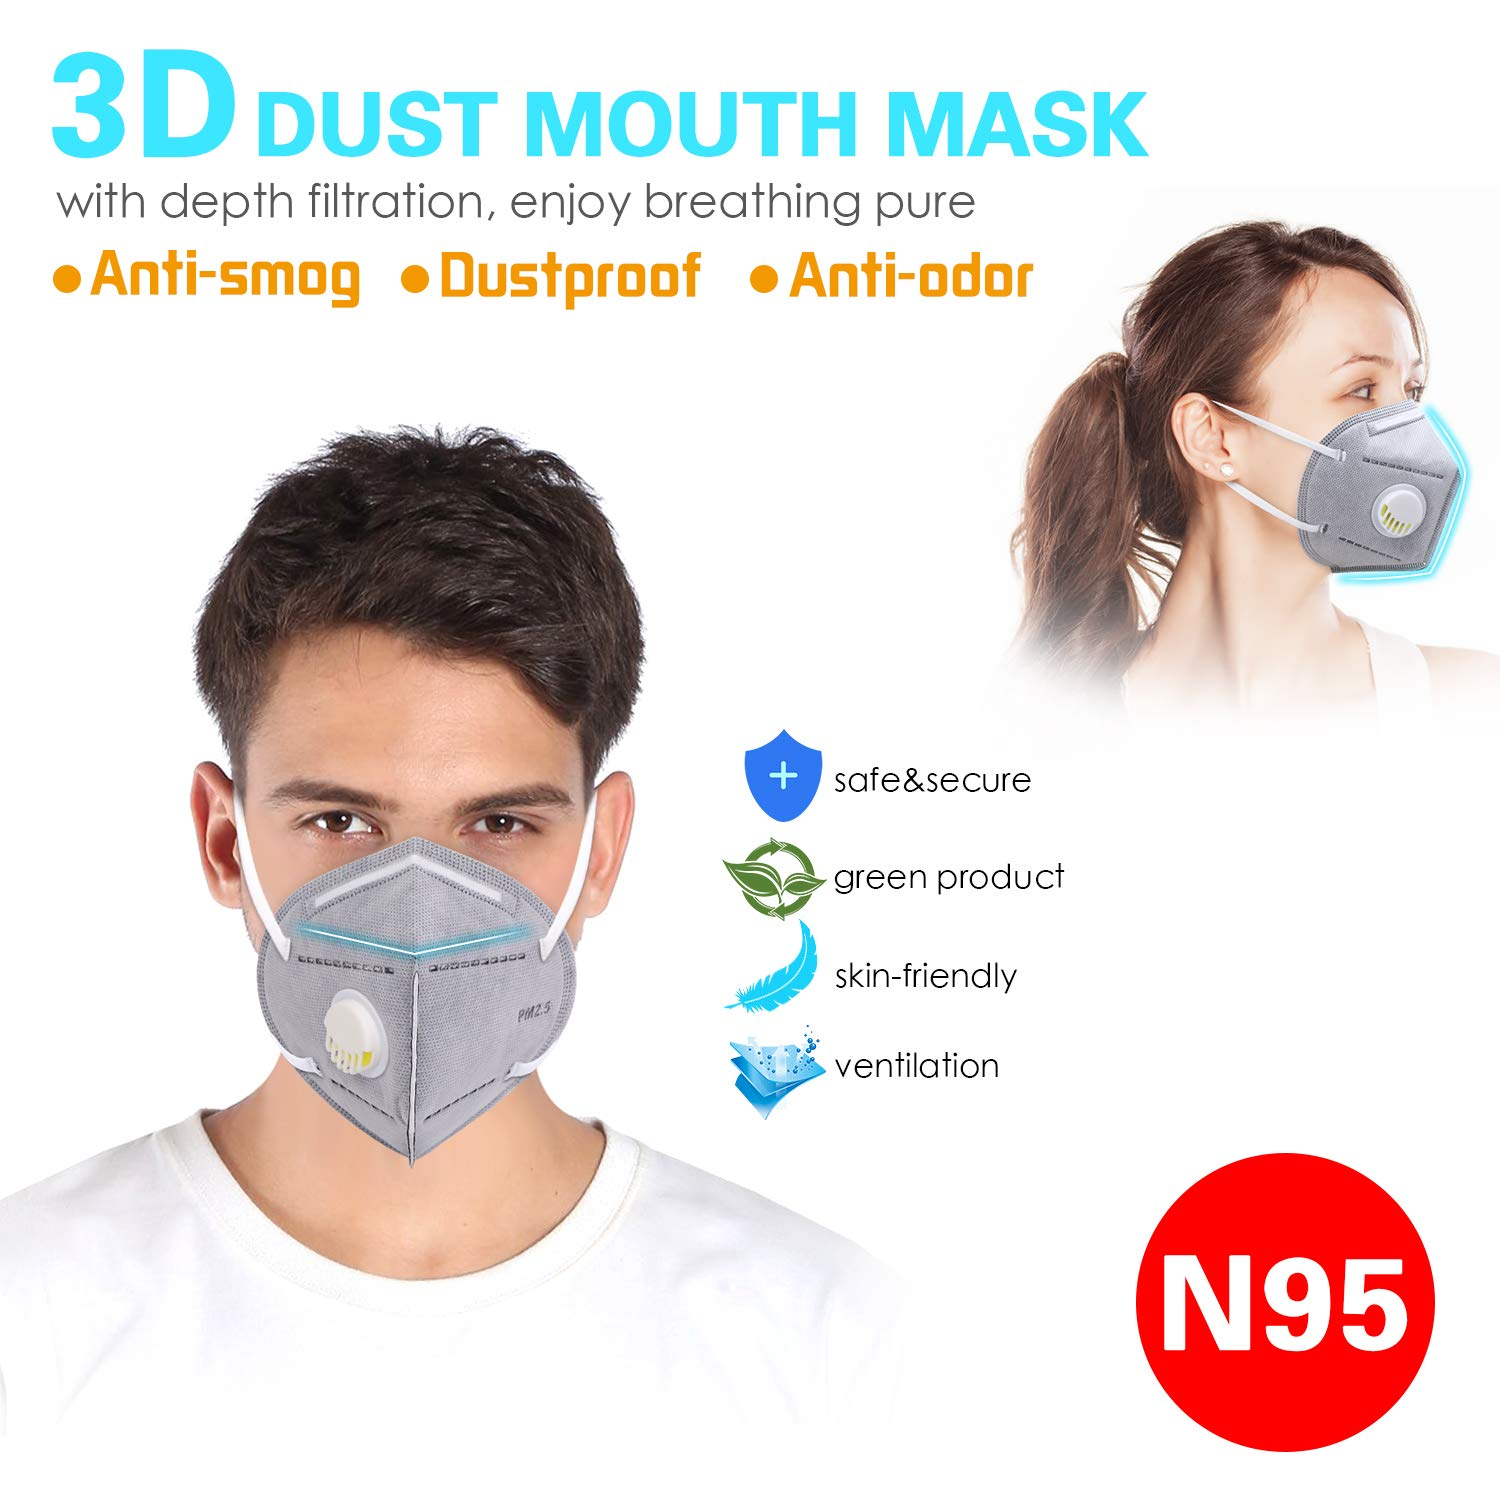 Disposable Dust Masks,WU-MINGLU Safety N95 Particulate Respirator Mask with Breathing Valve,Multi-Layer Protection,PM2.5 Filter,Personal Protective Equipment for Home,Outdoors (20 Packs)